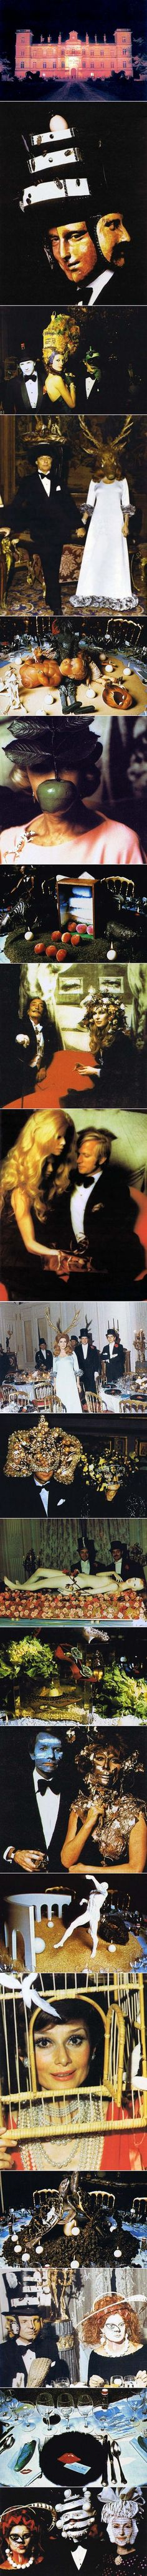 Extraordinary Photos From A 1972 Rothschild Surrealist Dinner Party .  This has given me some ideas for halloween